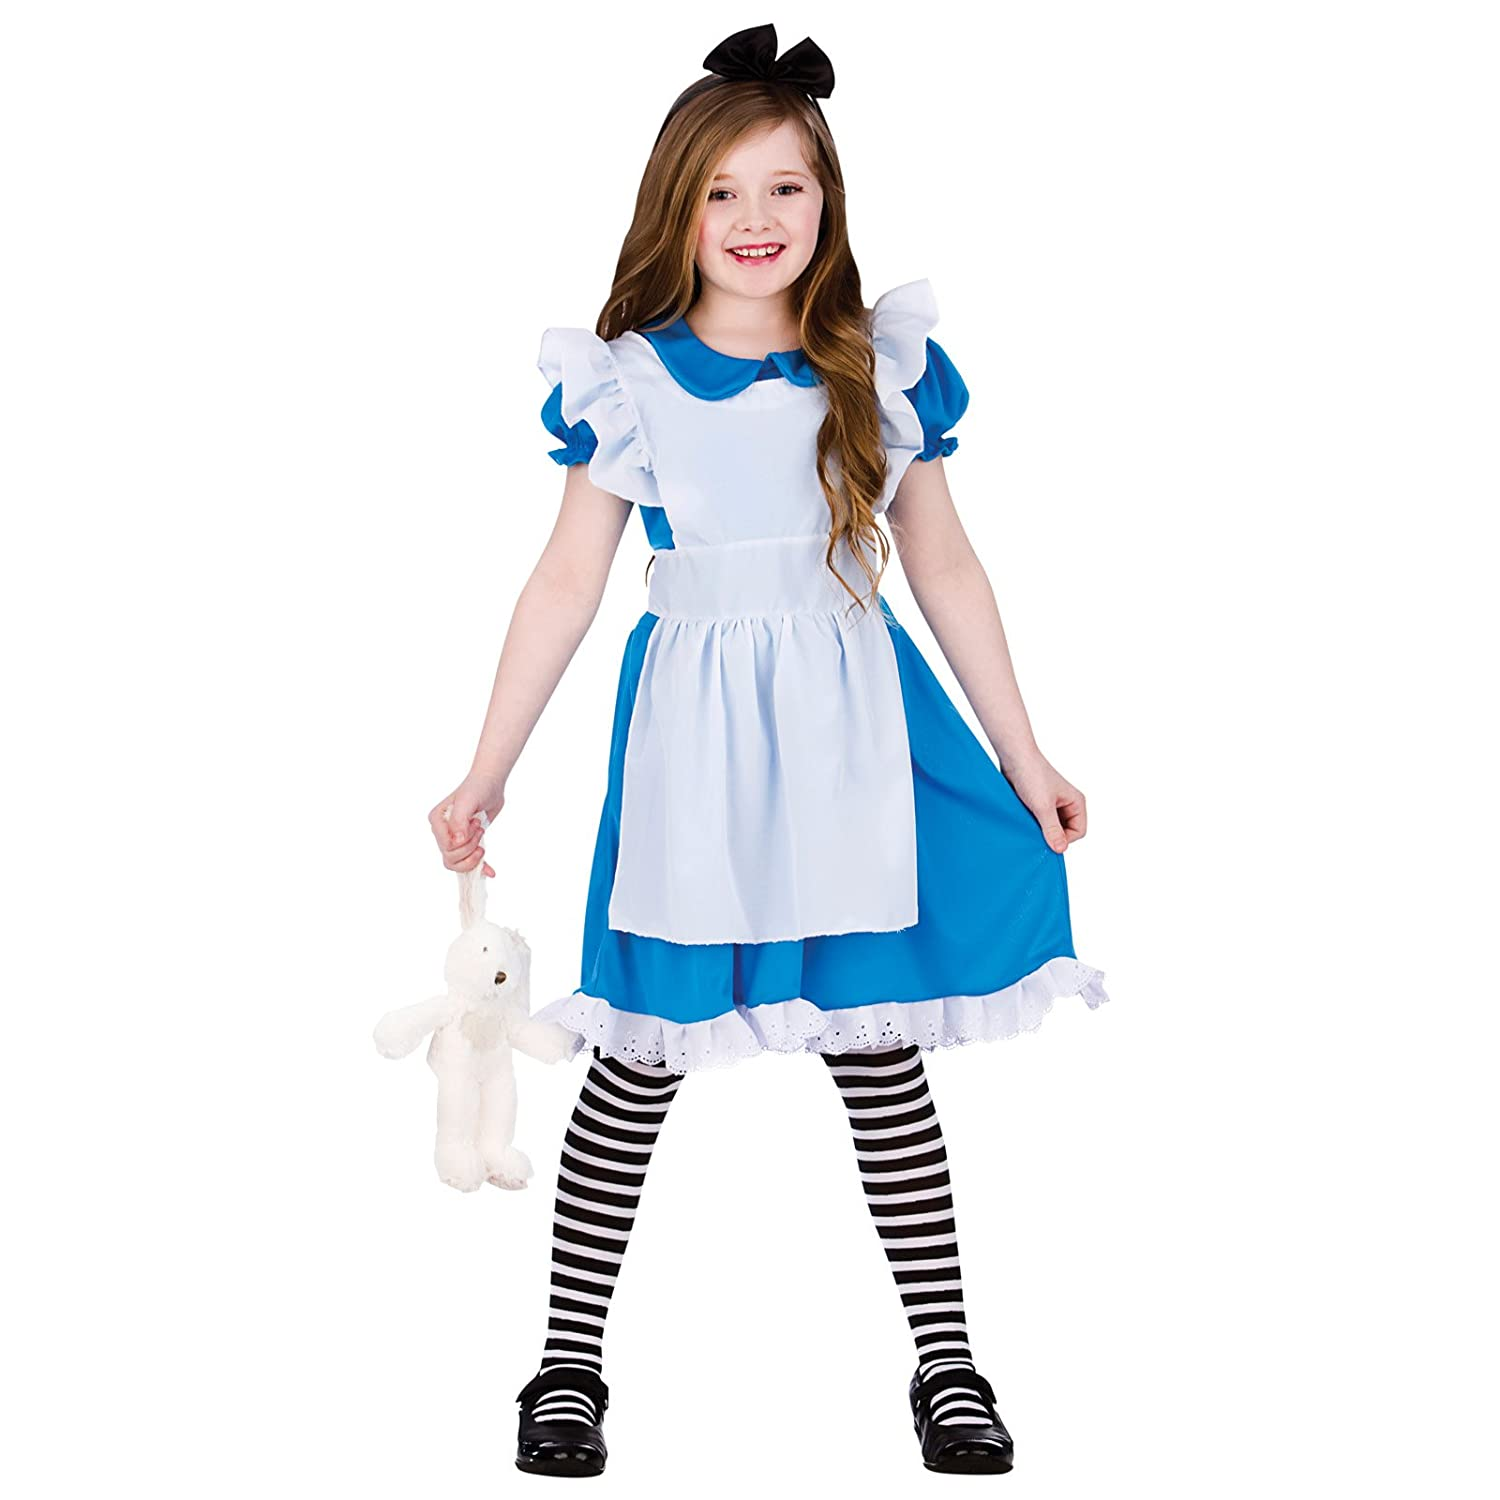 Childrens Girls Classic Storybook Alice Fancy Dress Up Halloween Costume Outfit Amazon.co.uk Toys u0026 Games  sc 1 st  Amazon UK & Childrens Girls Classic Storybook Alice Fancy Dress Up Halloween ...